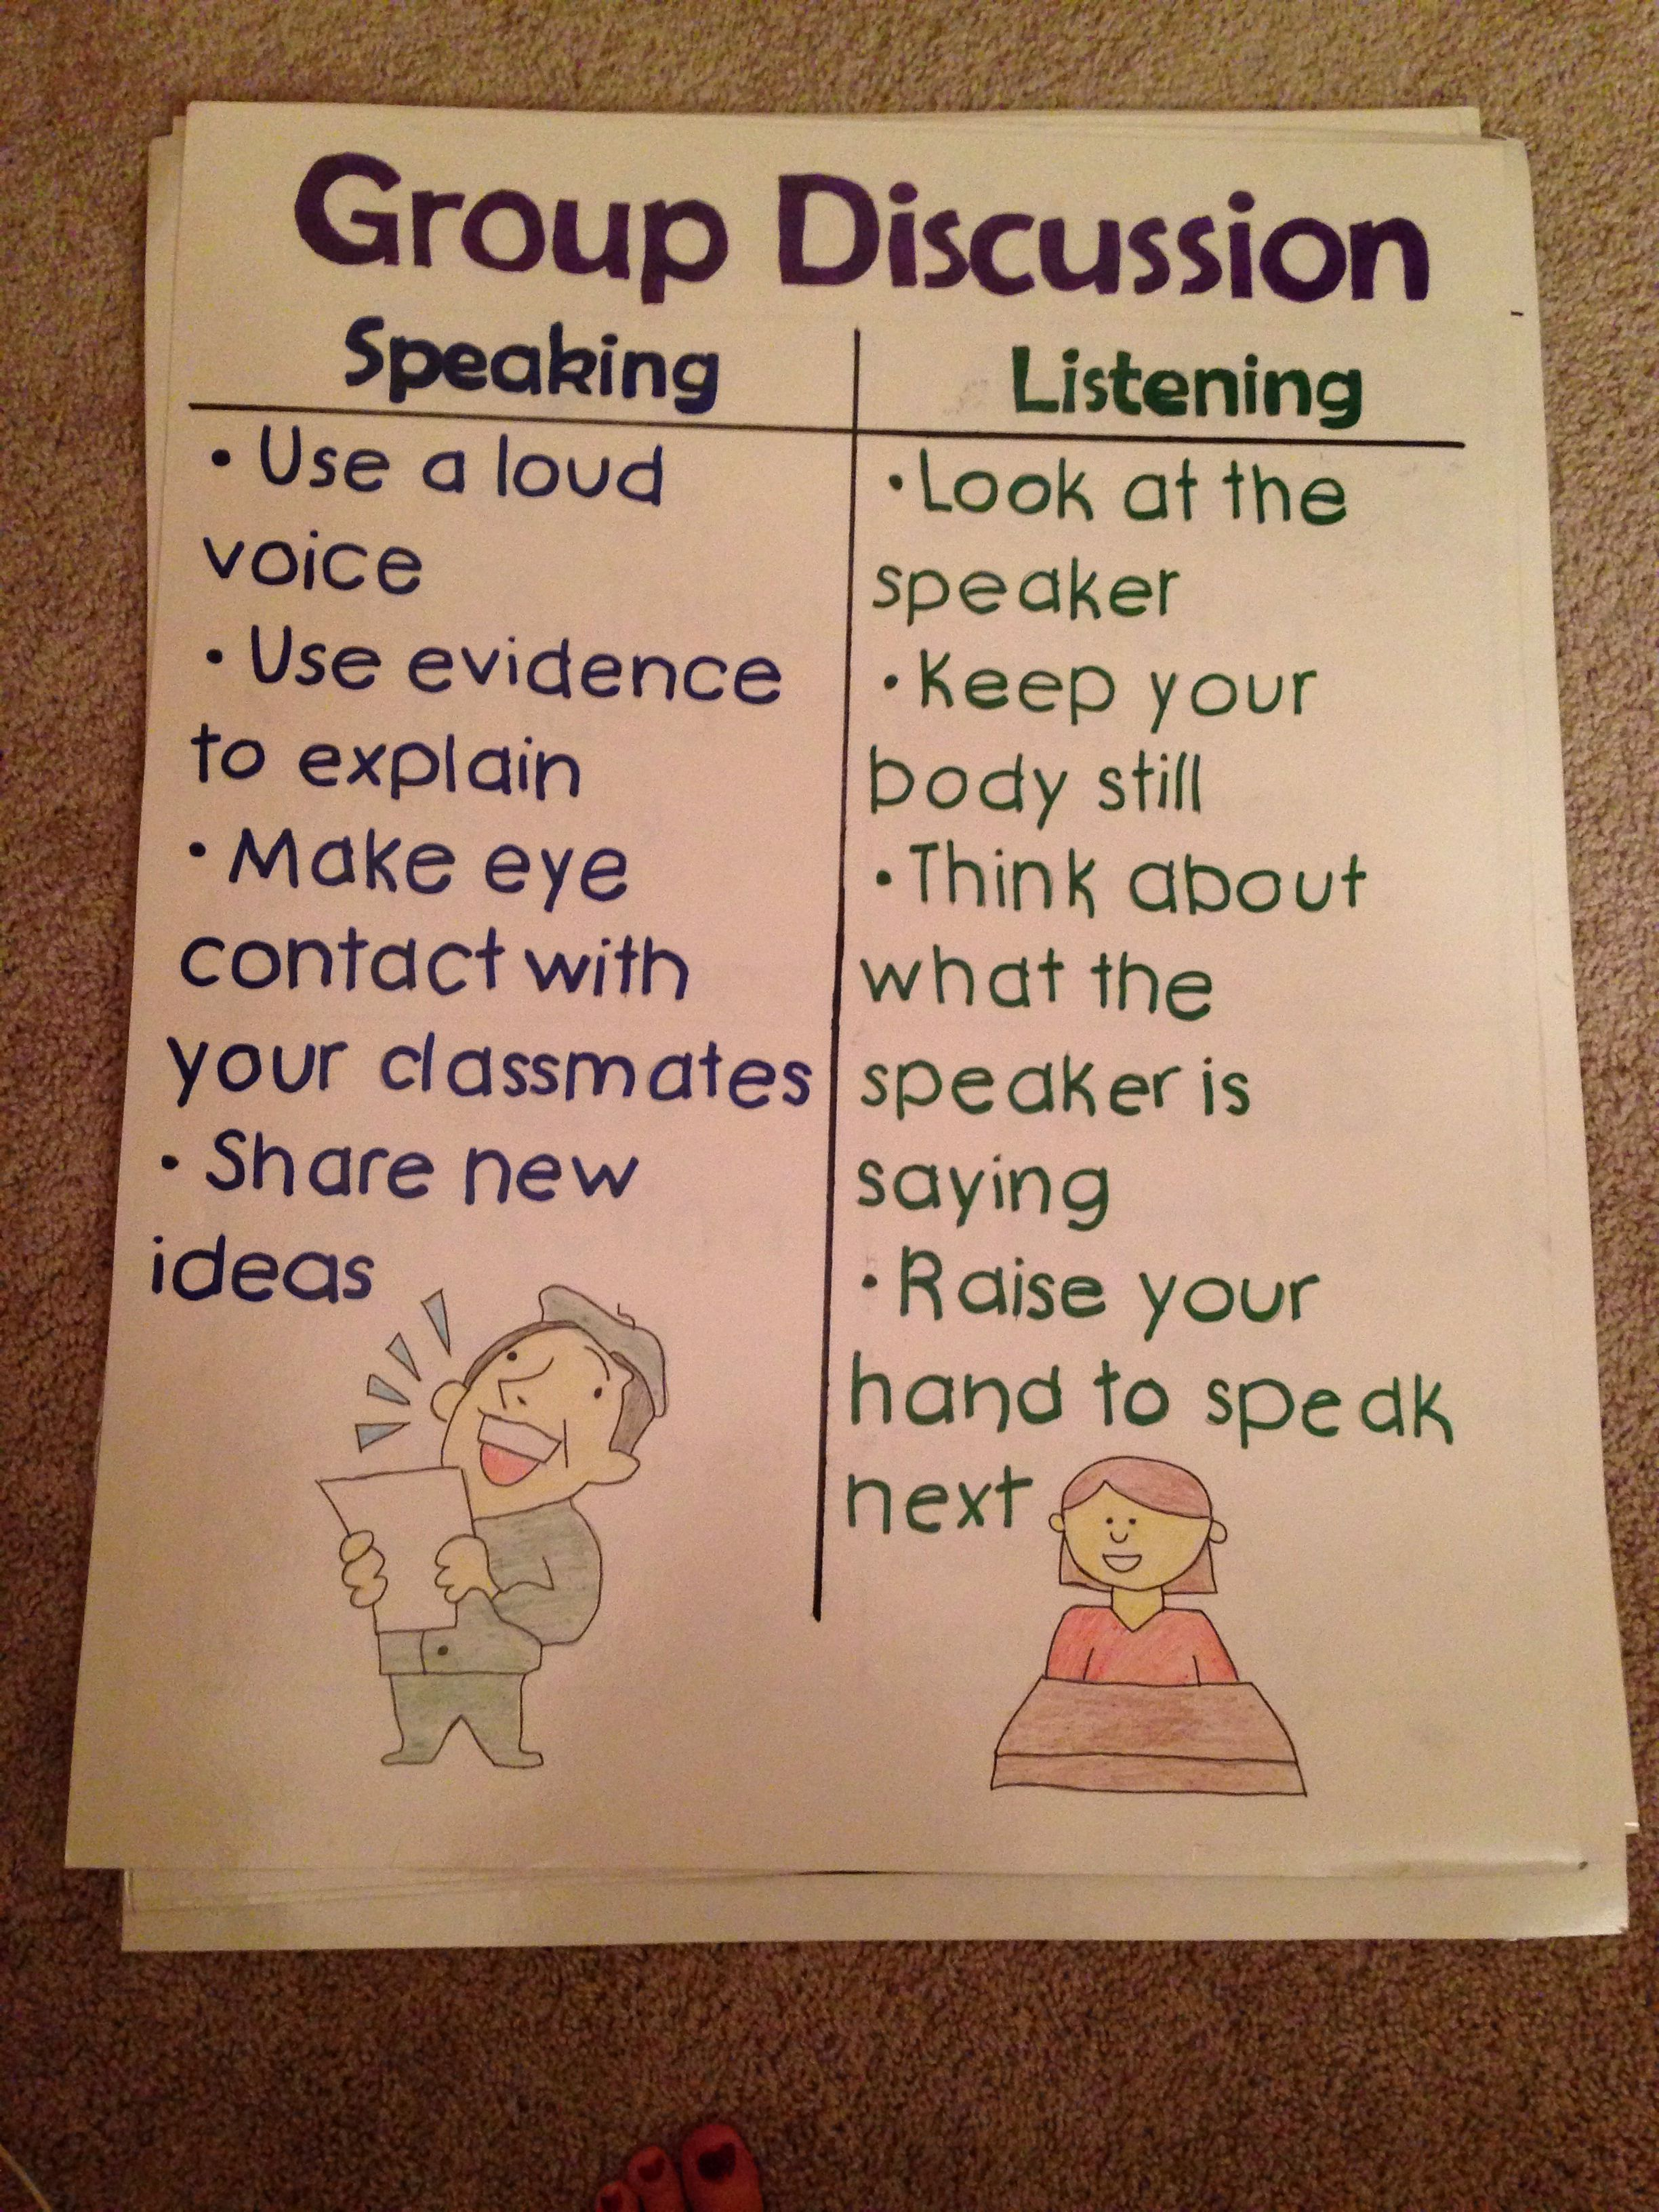 Group Discussion Poster And Anchor Chart Featuring Directions For Speaking And Listening